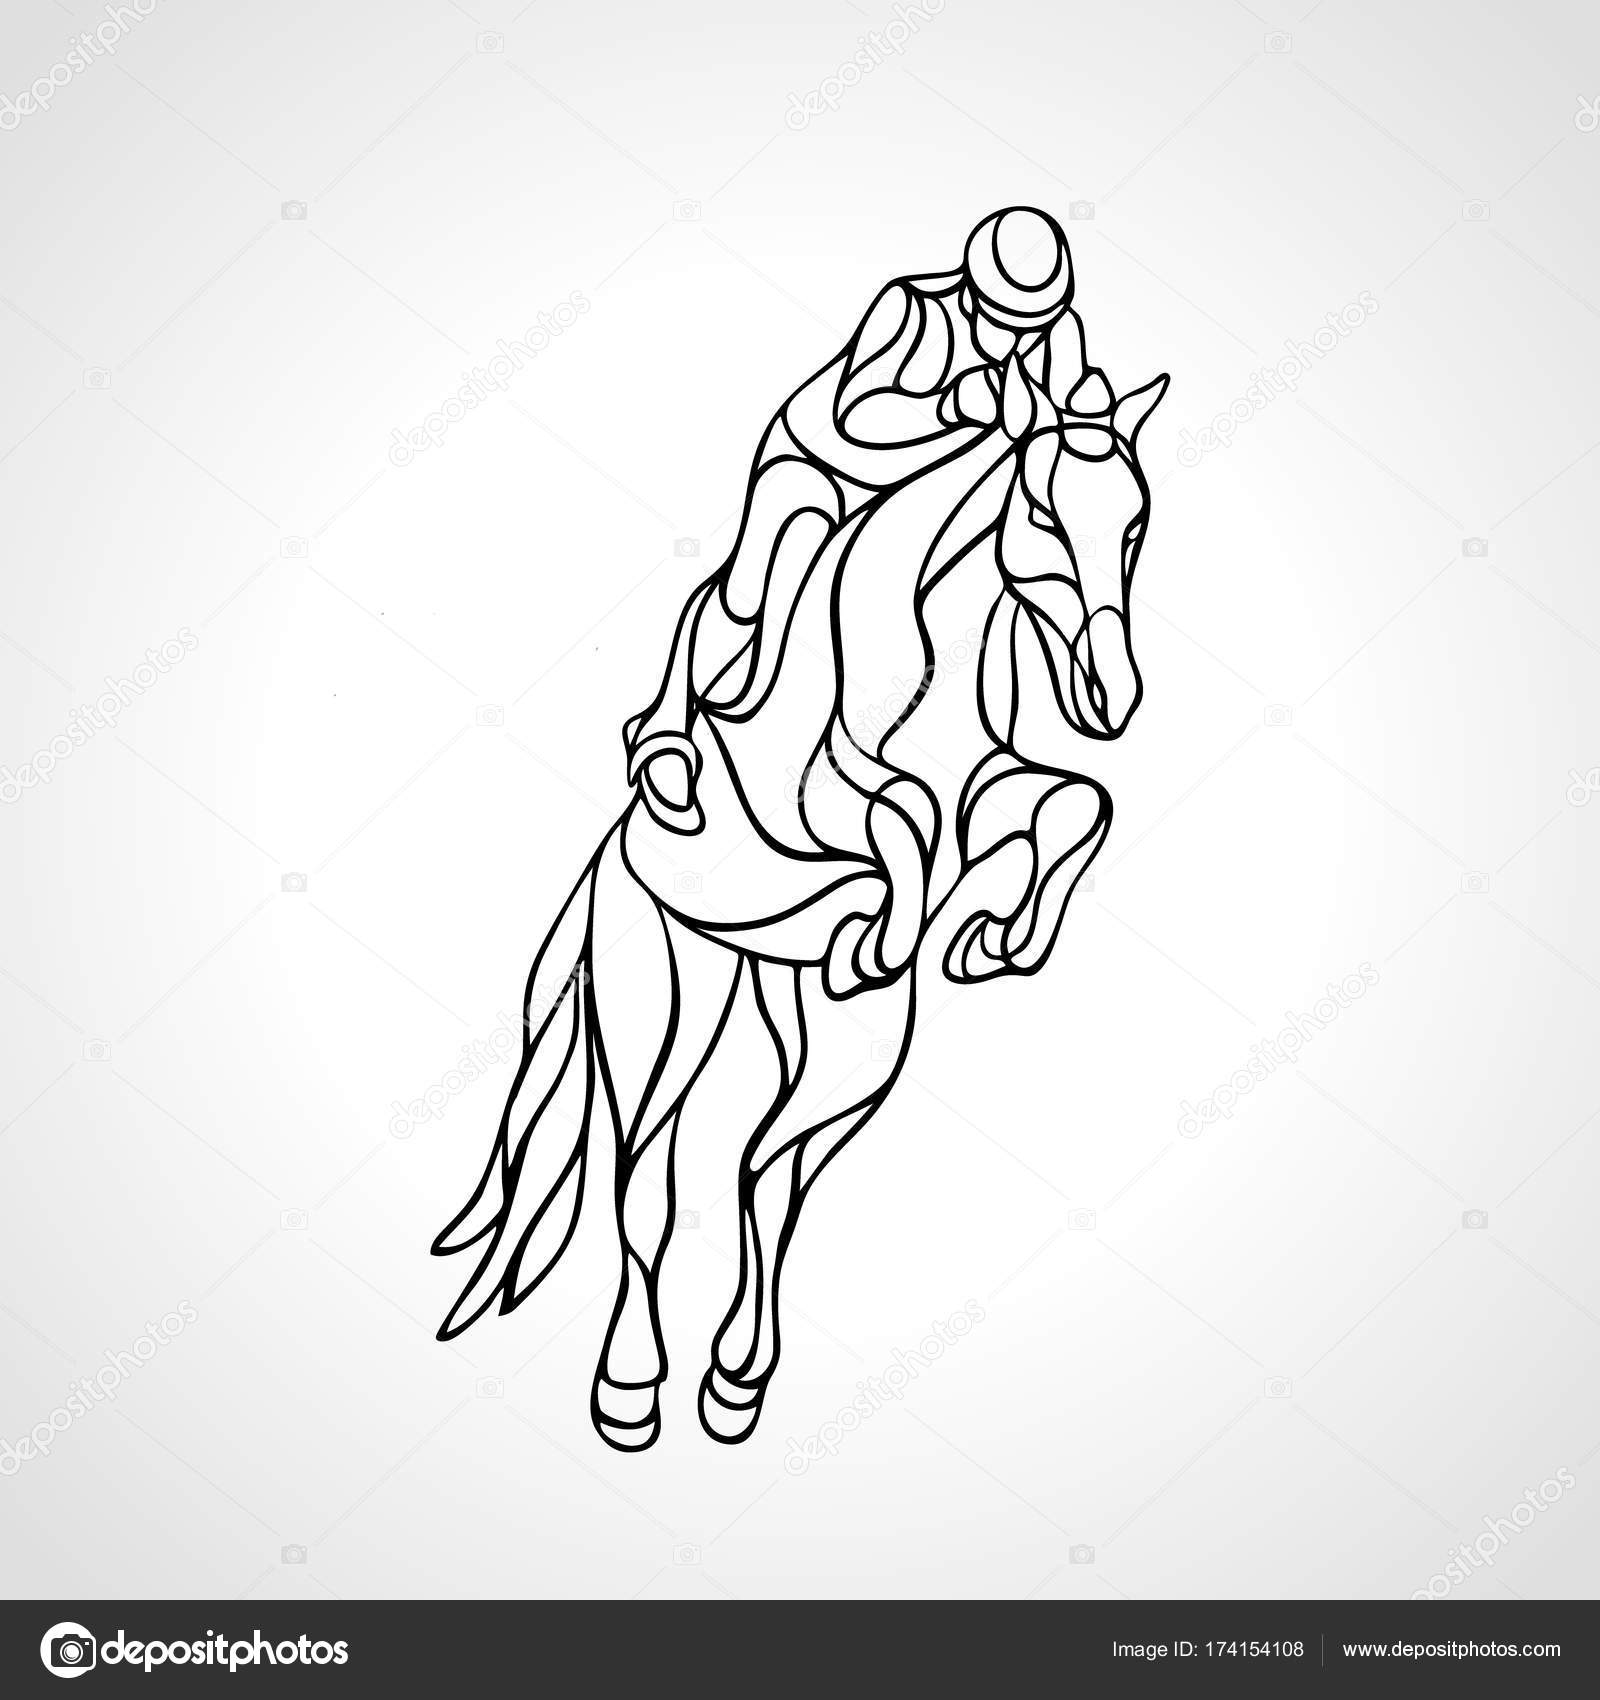 The Best Free Jockey Drawing Images Download From 122